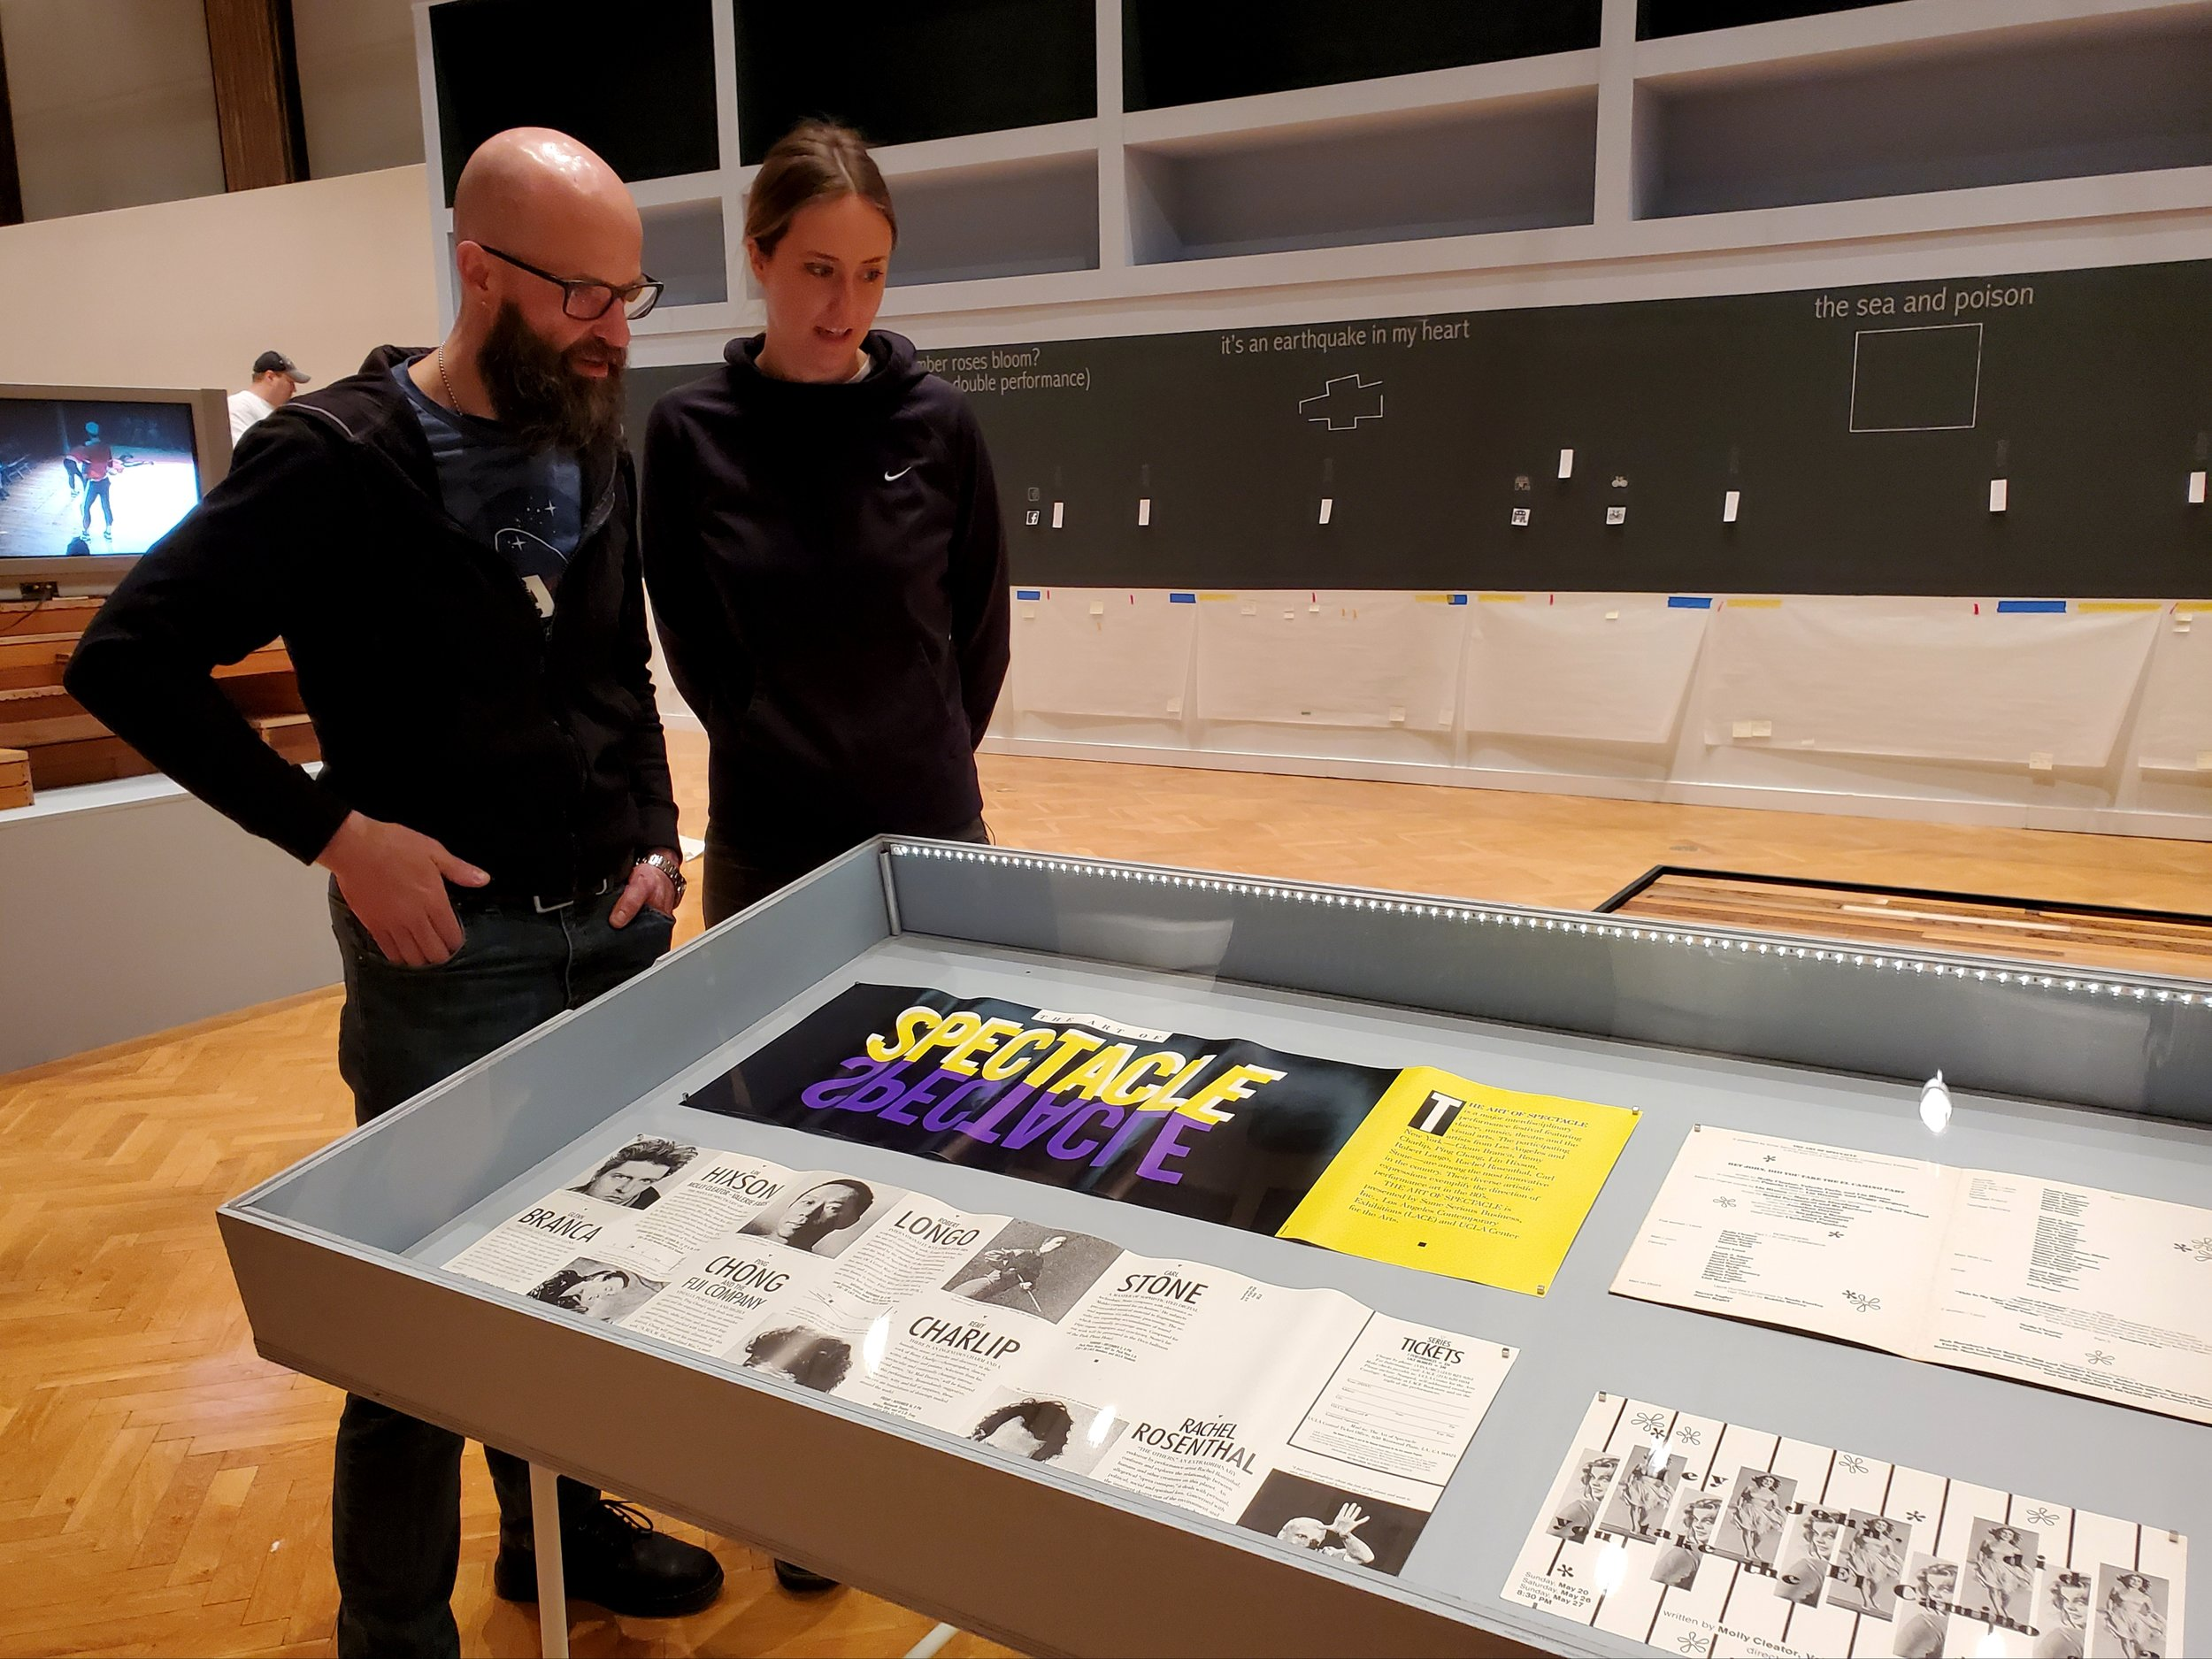 Goat Island Archive curator Nicholas Lowe and Sarah Skaggs looking at one of the Goat Island Archive displays